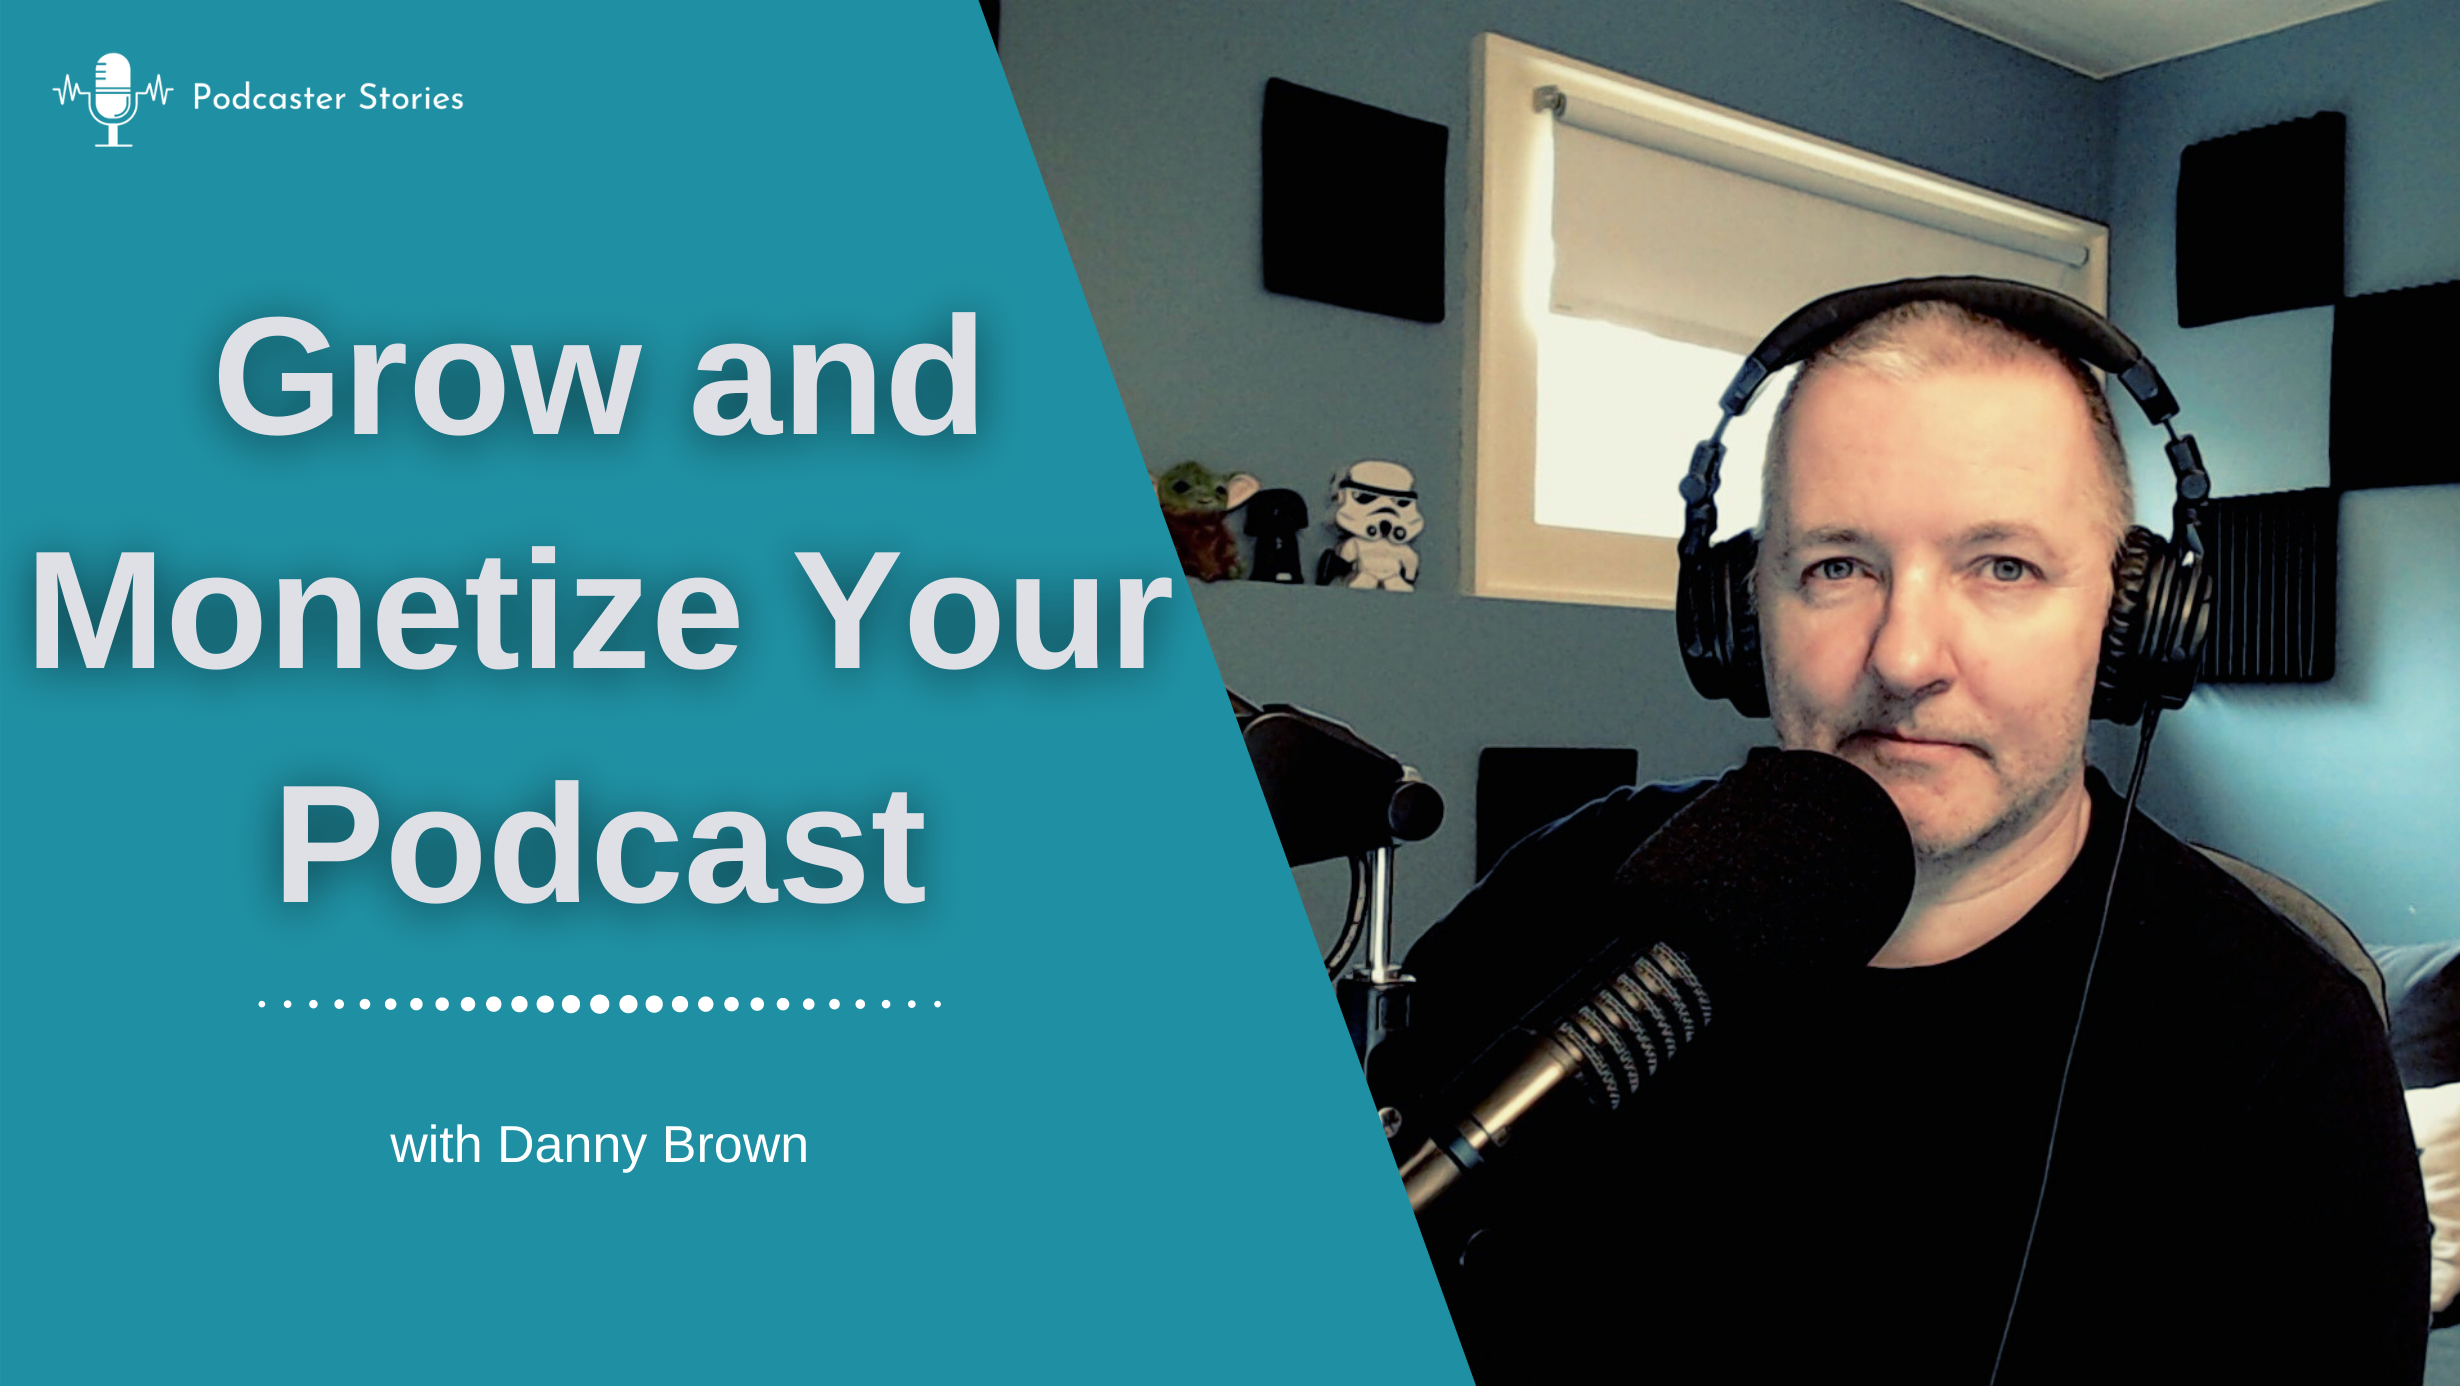 Tips to Grow and Monetize Your Podcast